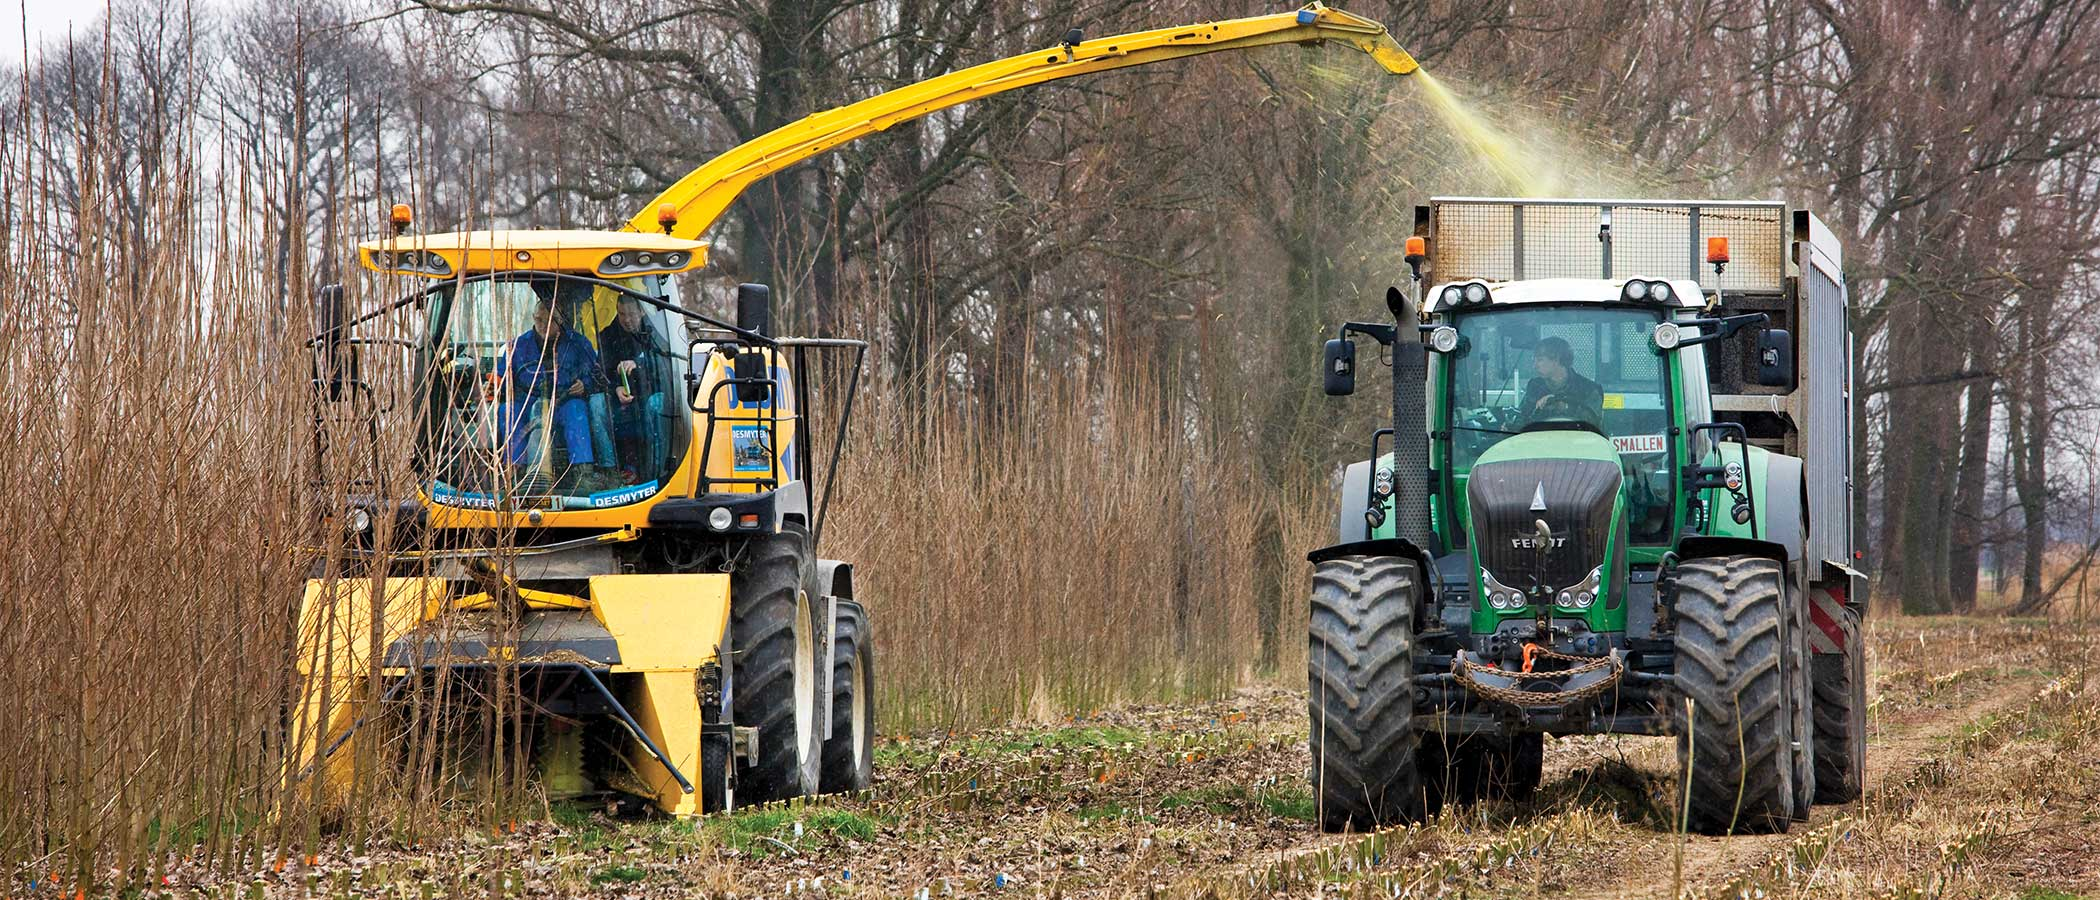 Tractpr harvesting biomass in Germany.